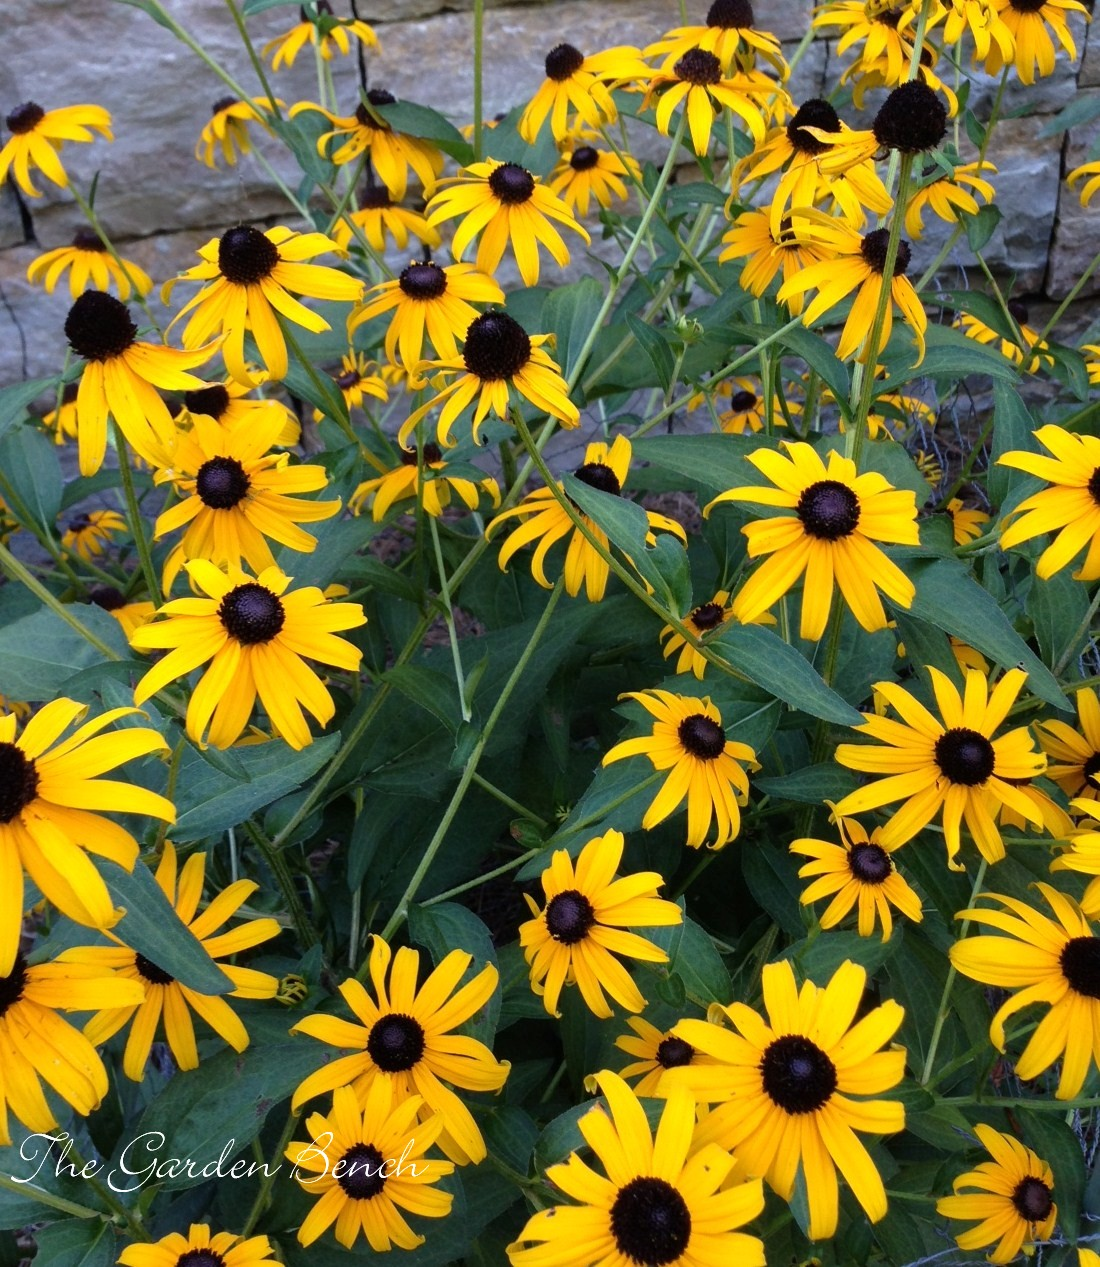 Black Eyed Susans The Garden Bench